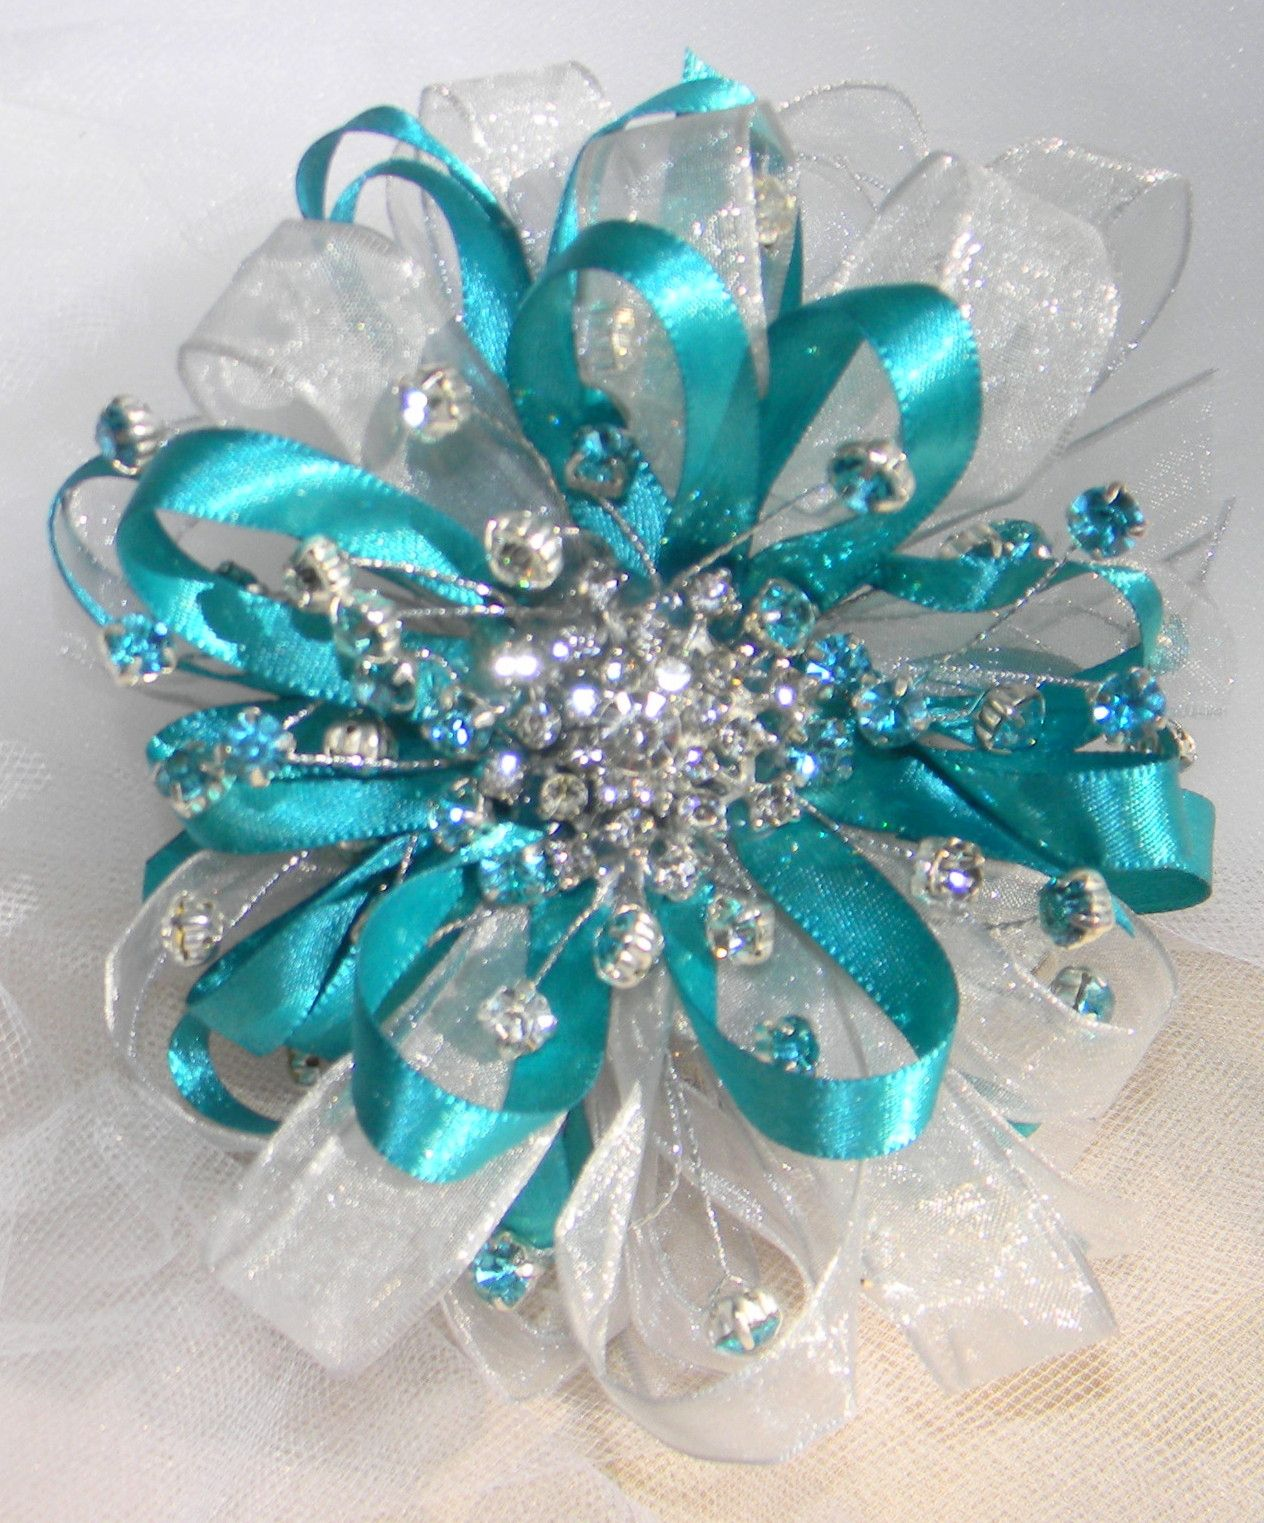 Teal Corsage I Made For Sons Prom Date And Silver